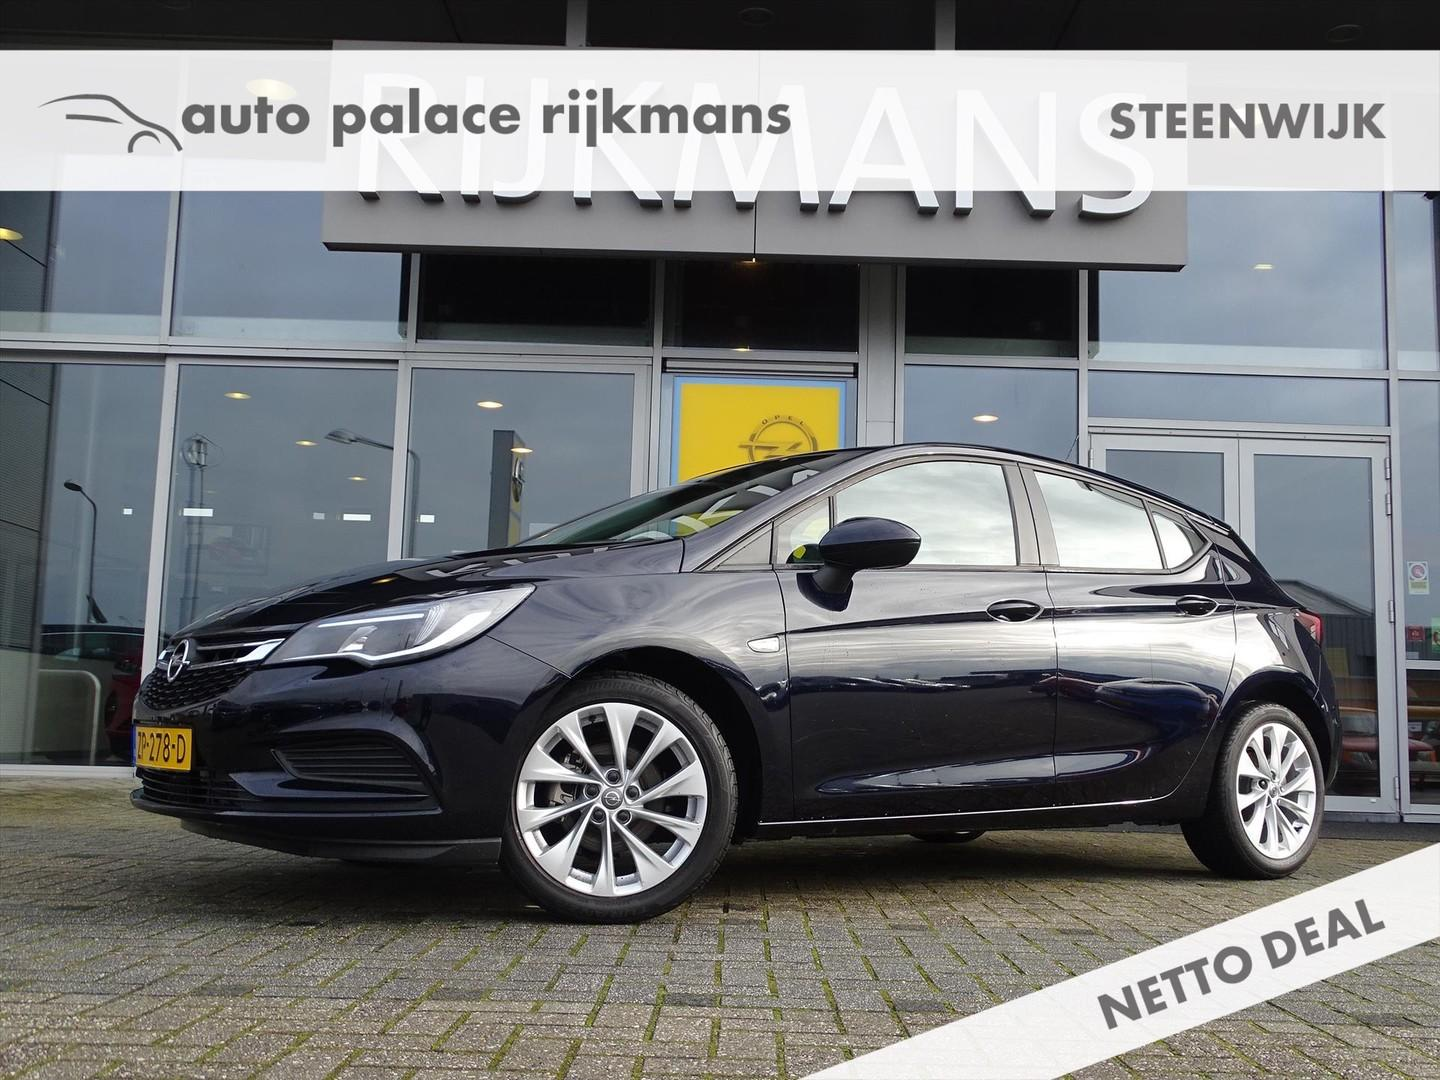 Opel Astra Online ed. 1.0t 105 pk - 5drs - airco - 17 inch lmv - cruise - zuinig